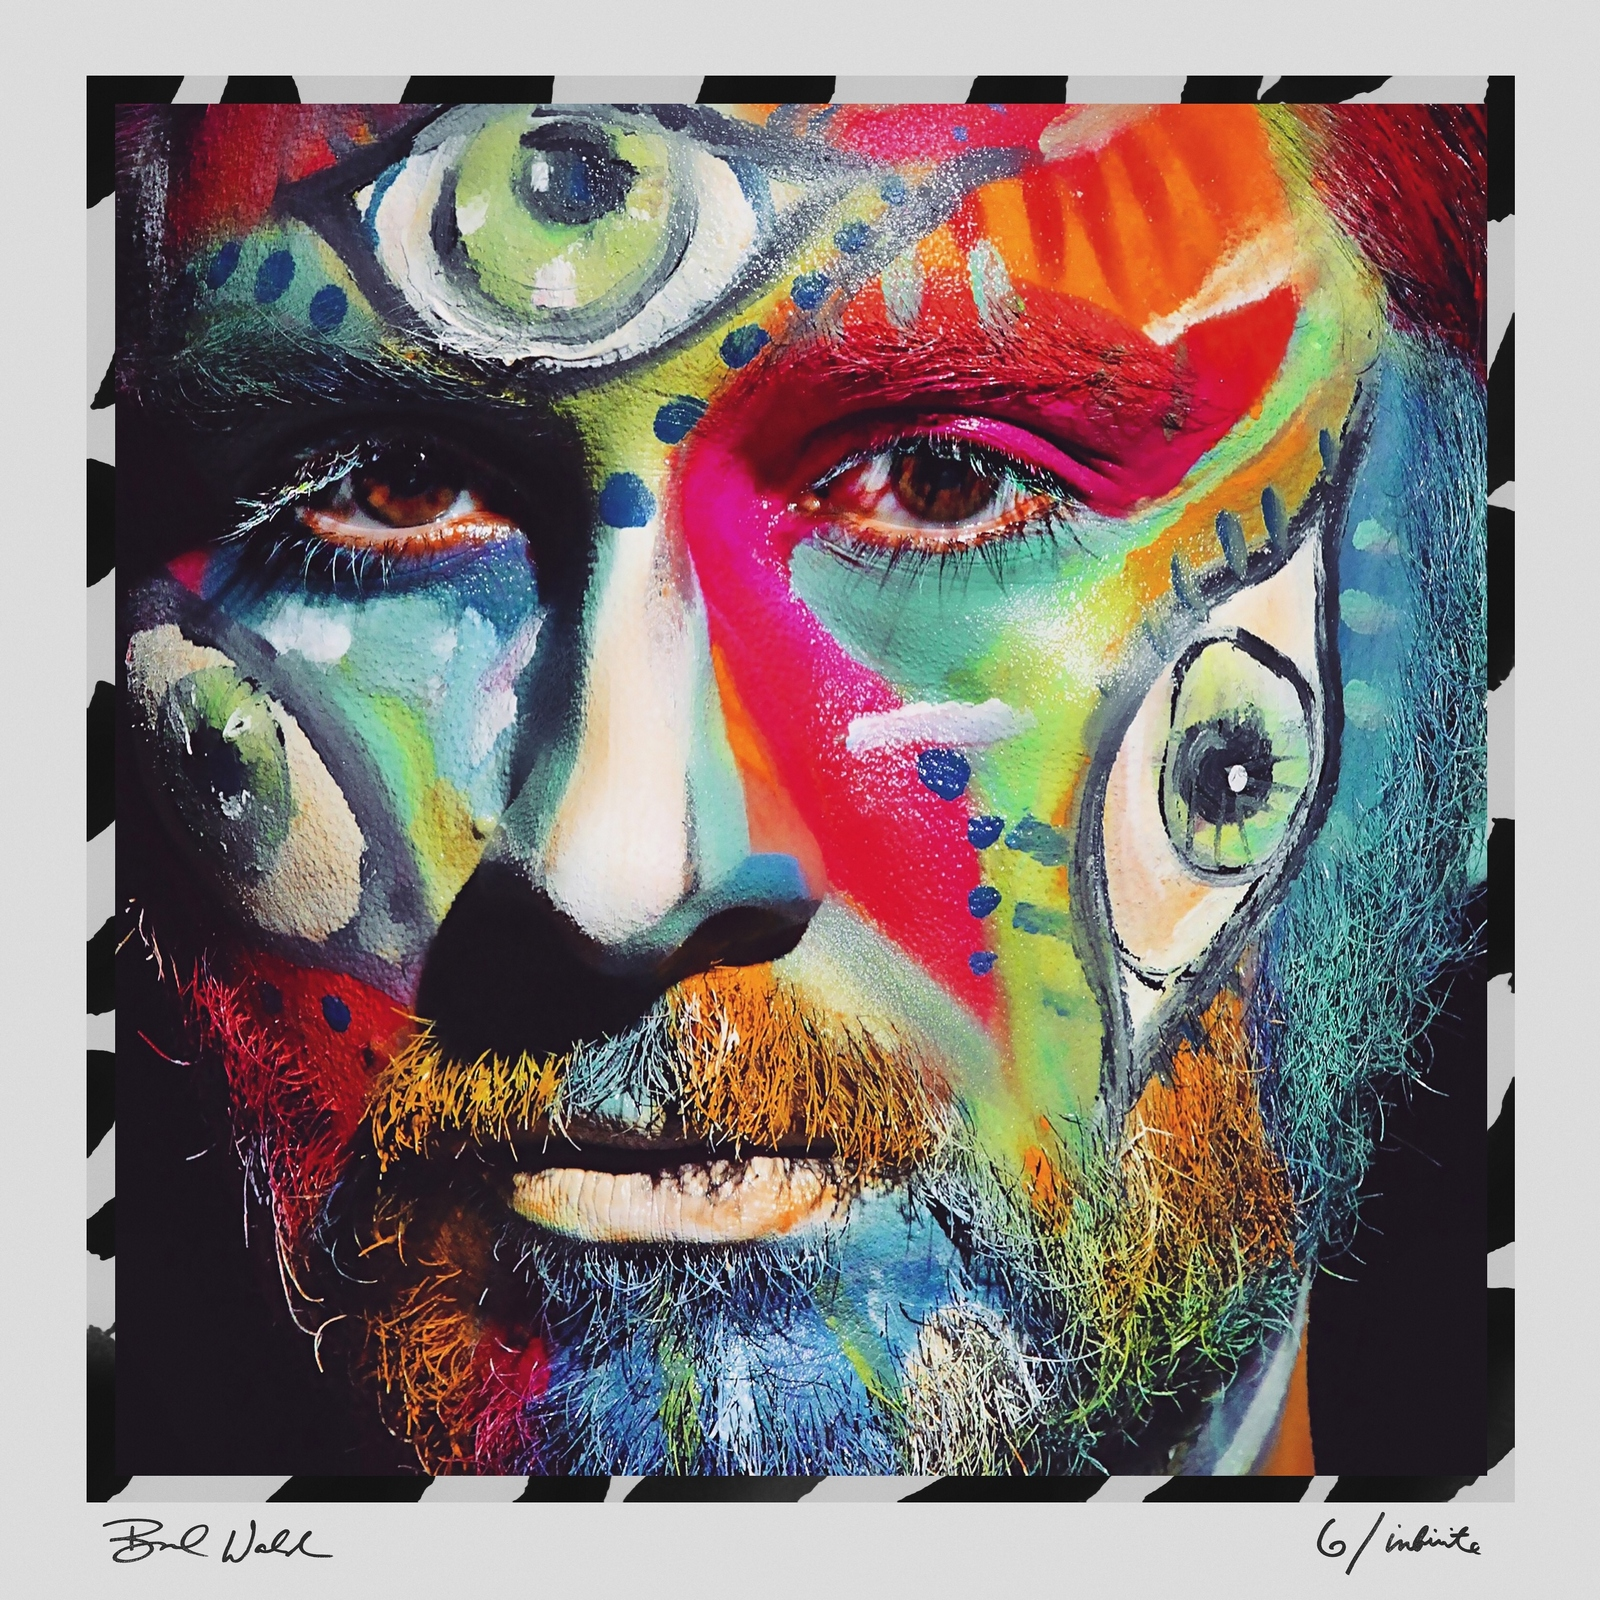 SIX INFINITE (2016) - 01 Available02 Bottoms Up03 Nicolette Likes Ladies04 Easy (feat. Juliana Hatfield)05 Come Into My World06 Destroyer07 Take Everything 08 What Did I Do To You09 Creases 10 Live in Me (feat. Emm Gryner)11 Eye in the Night (feat. Luscious Jackson)12 Bruise13 Give Me Back My Man (feat. Maria McKee)---iTunes/Digital Bonus Tracks:14 Battle Cry15 Electronirotica16 Destroyer (Fonzerelli Remix)Six Infinite was released in October 2016. It included thirteen tracks, plus three digital bonus tracks available on iTunes and other digital retailers. Cover image was photographed by Brad Walsh and art-directed by visual & performance artist Anna Hafner.A deeply personal guerrilla pop album... [Six Infinite] tells a series of dark-edged stories about love and friendship over layered, haunting electronica beats.—TIMEHow often does one press play on a new album and feel as if they're hearing something that defies the genres they've known thus far? As a considered, uncommon and cohesive piece of electronic music, Six Infinite makes us excited for all the [music] Walsh will continue to imagine, produce and share.—CoolHunting.comThe album's smooth tones and infectious beats serve as the base for emotional lyrics spurred by a sudden separation... However, Walsh is not just making music; he's using his platform to take a stand for what he believes in.—PAPER Magazine